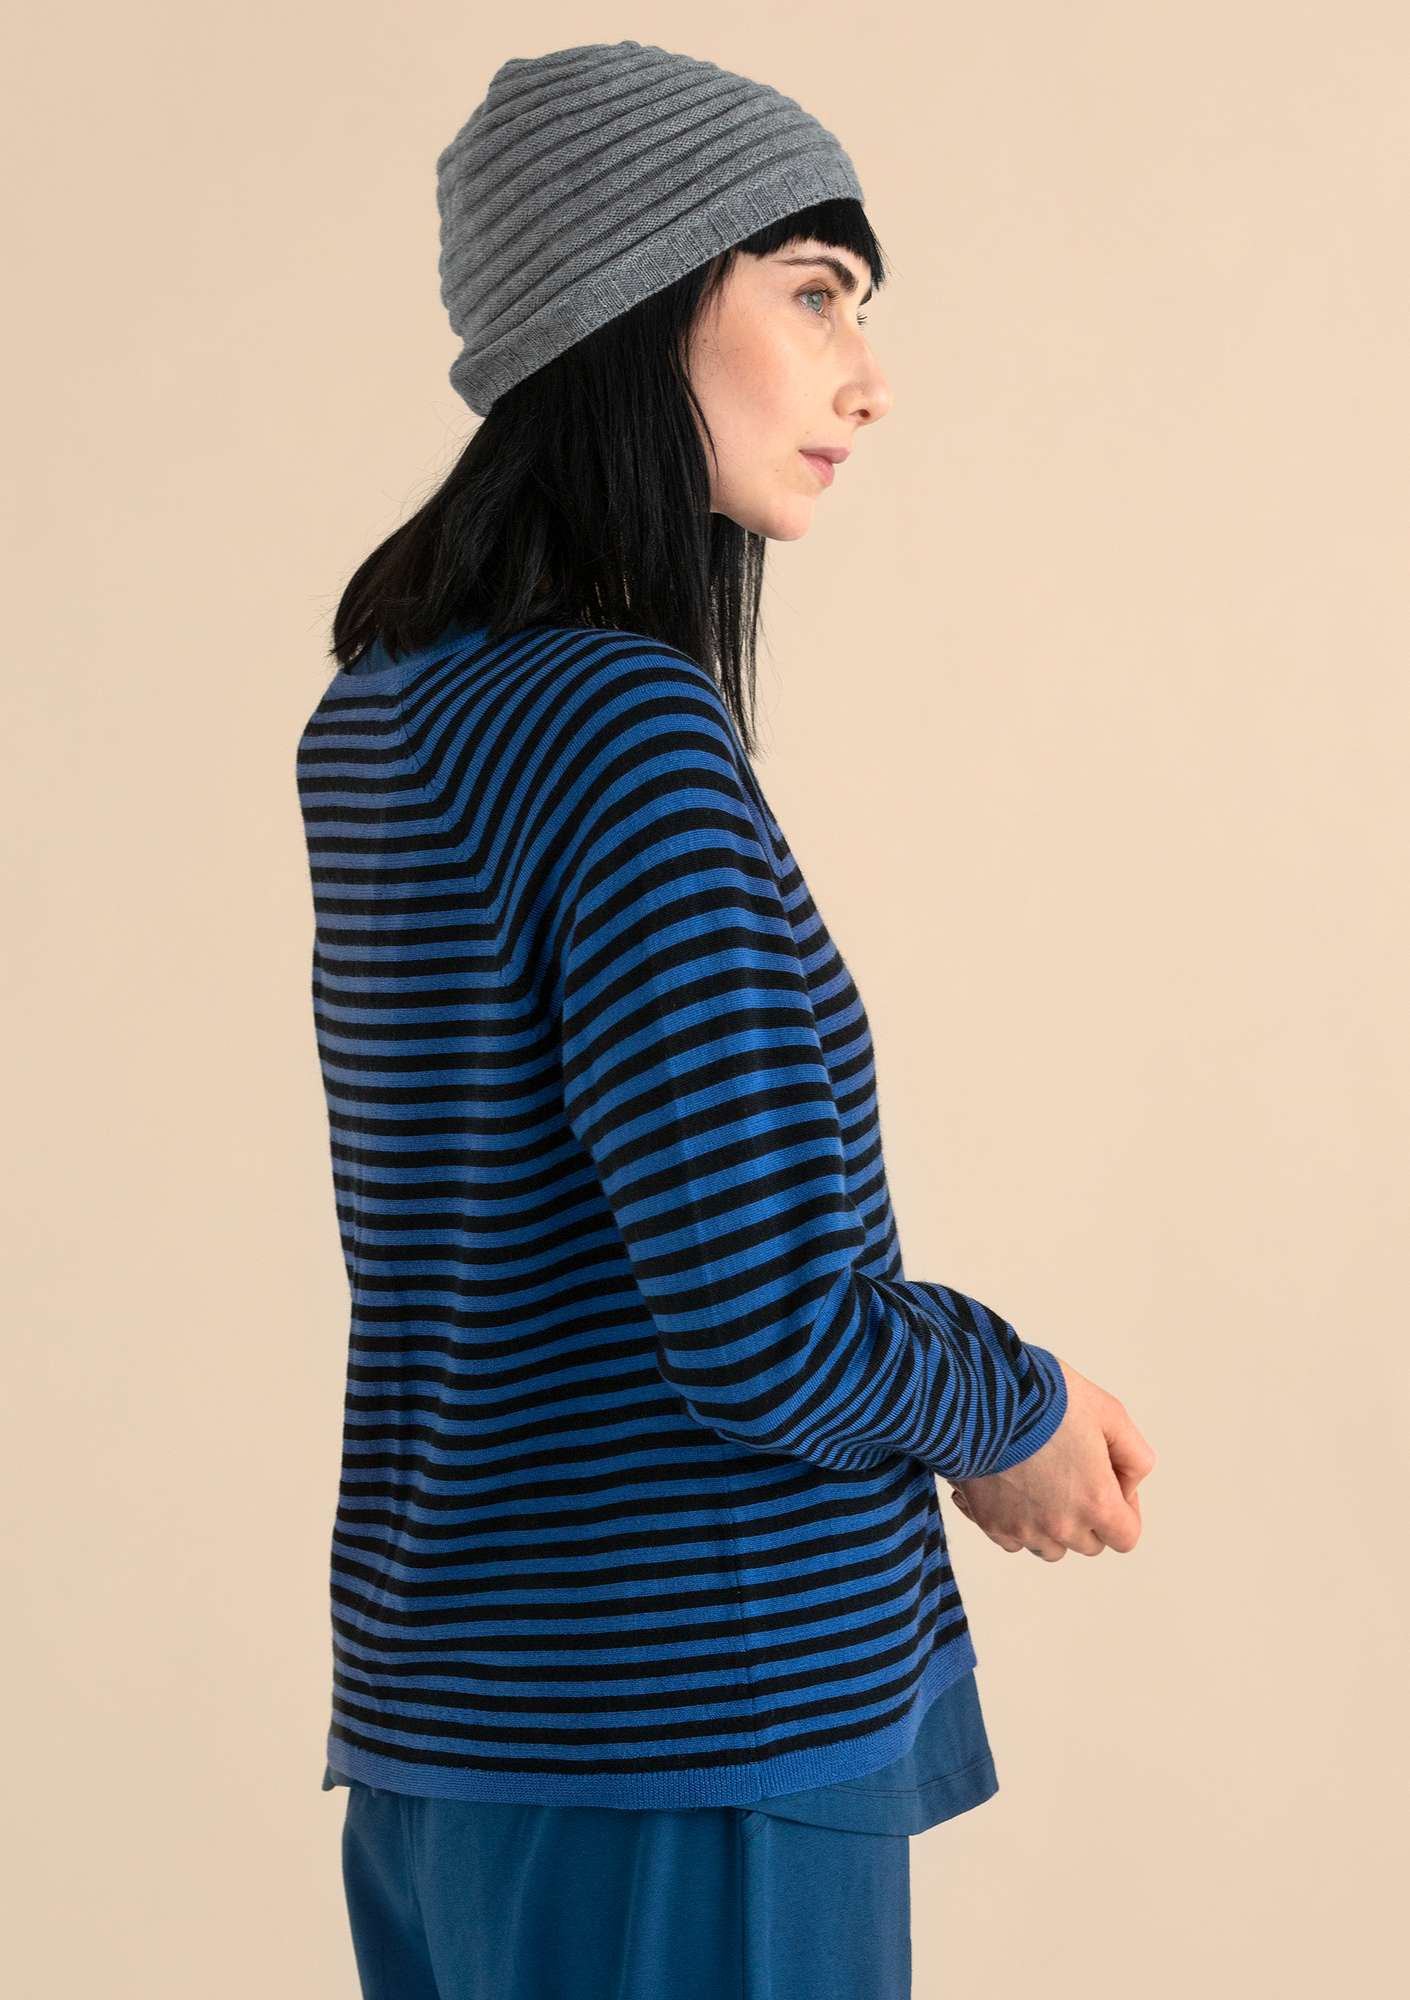 A crafty cardigan in organic wool porcelain blue/black